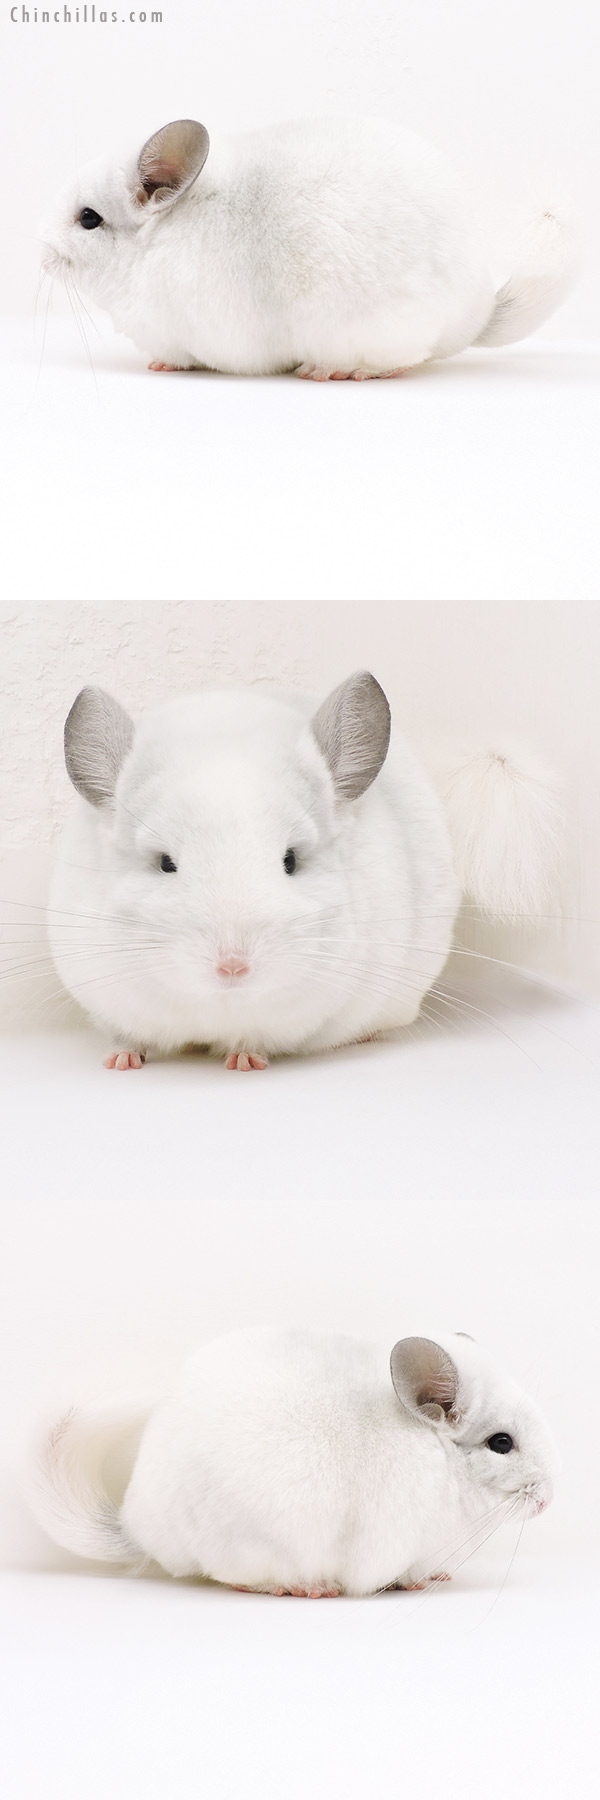 16244 Blocky Premium Production Quality Violet & White Mosaic Female Chinchilla